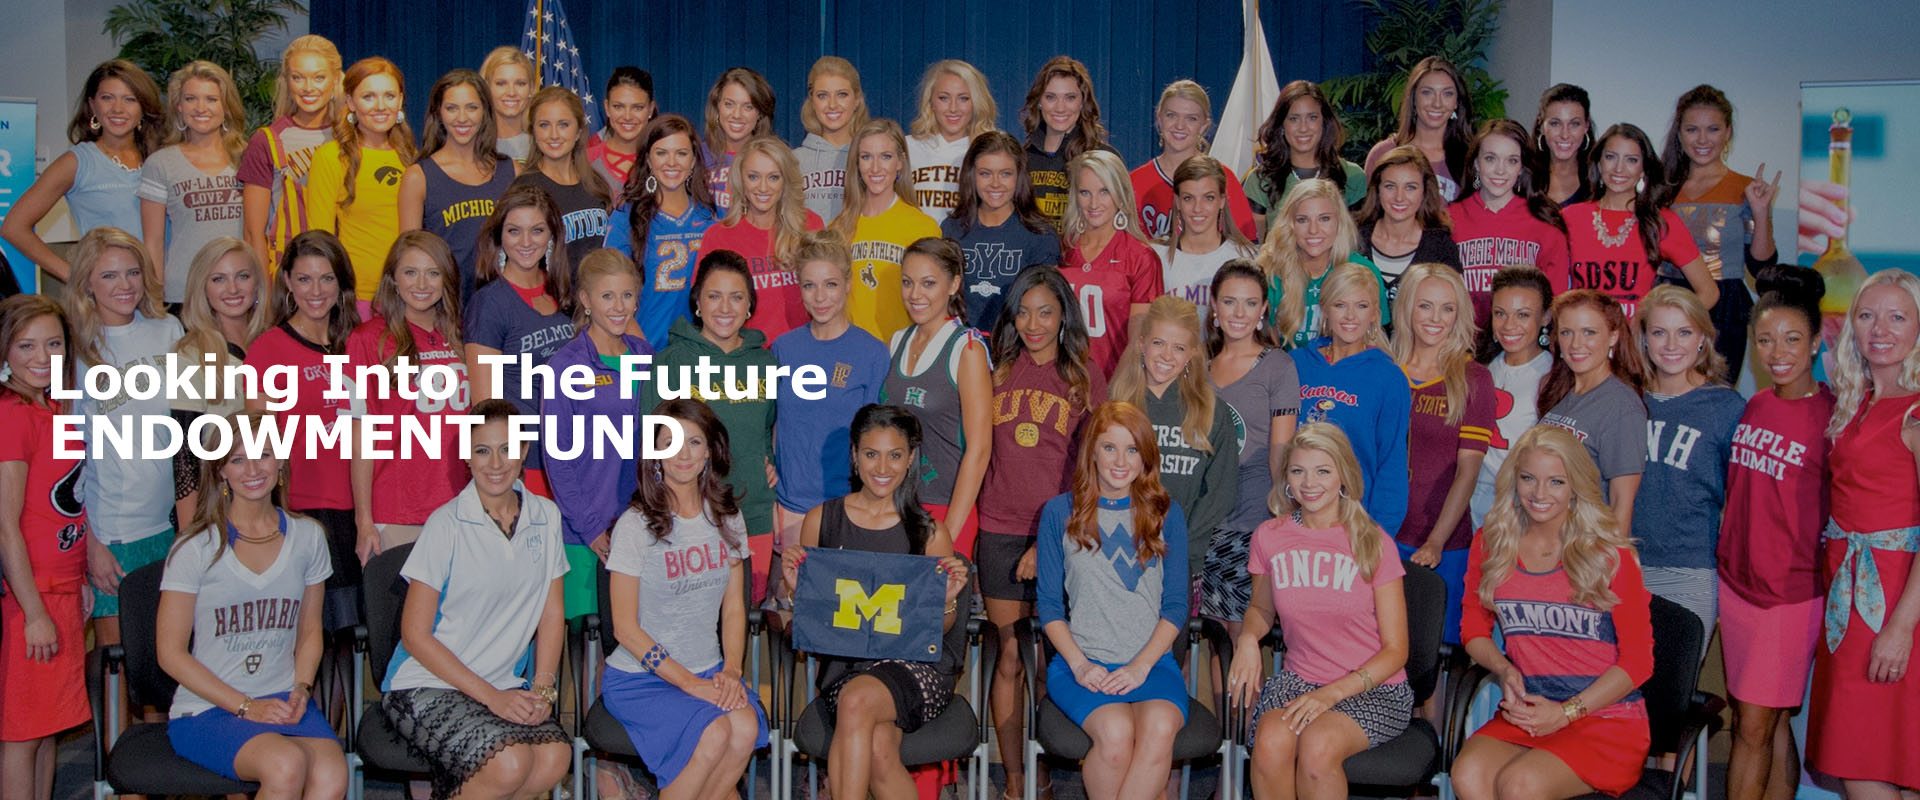 The Miss America Foundation Endowment Fund